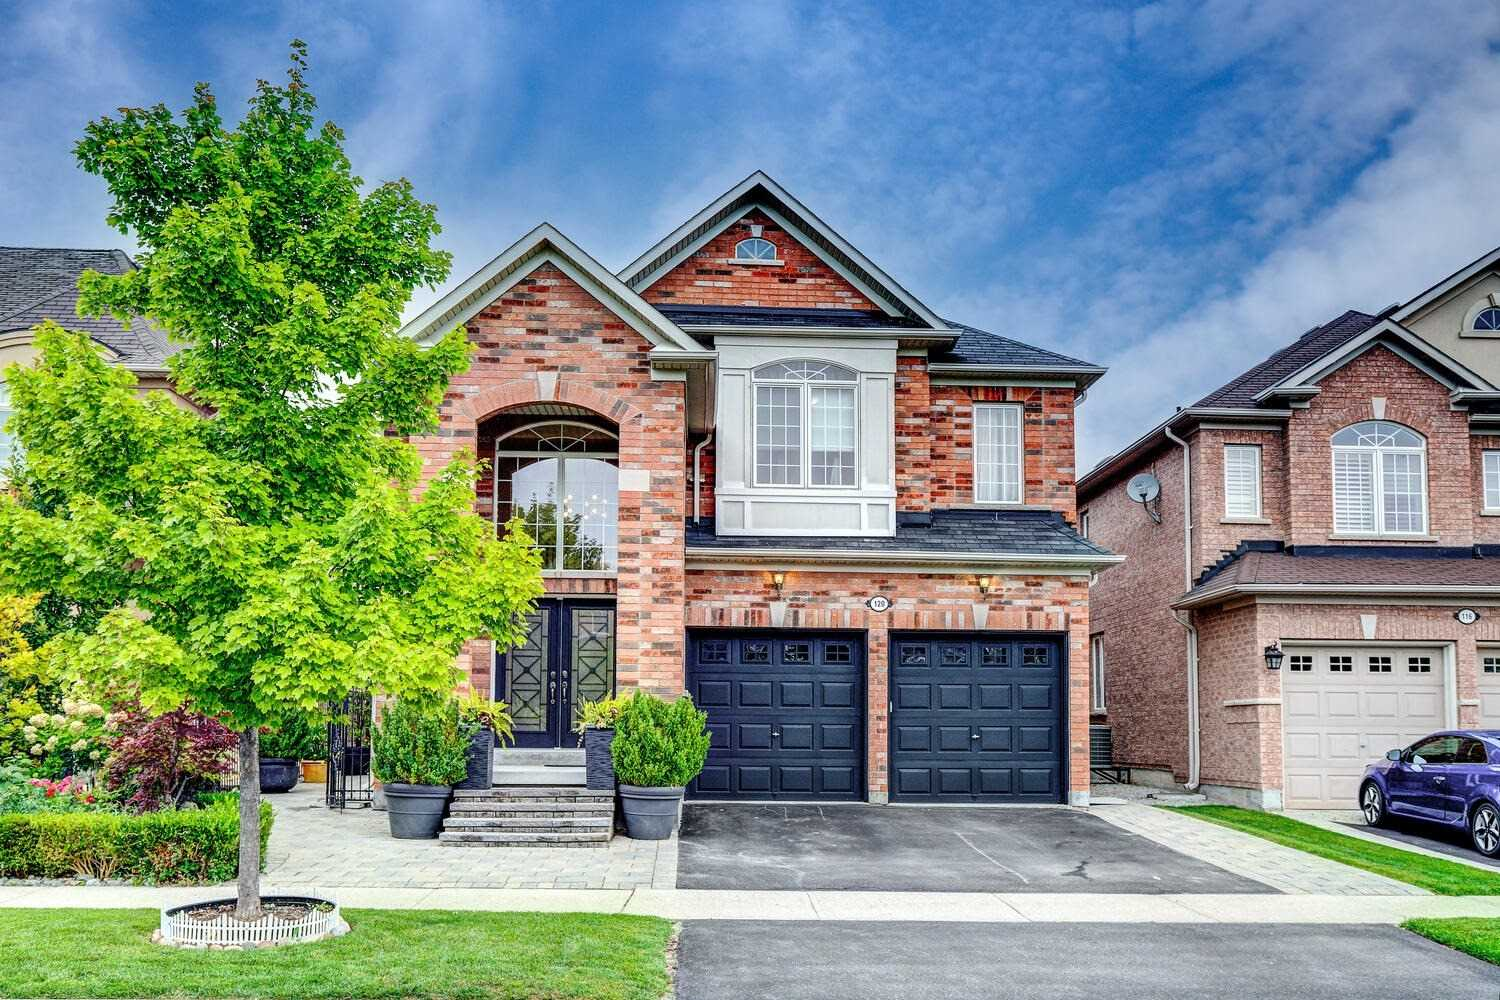 Detached house For Sale In Vaughan - 120 Golden Orchard Rd, Vaughan, Ontario, Canada L6A0M7 , 4 Bedrooms Bedrooms, ,6 BathroomsBathrooms,Detached,For Sale,Golden Orchard